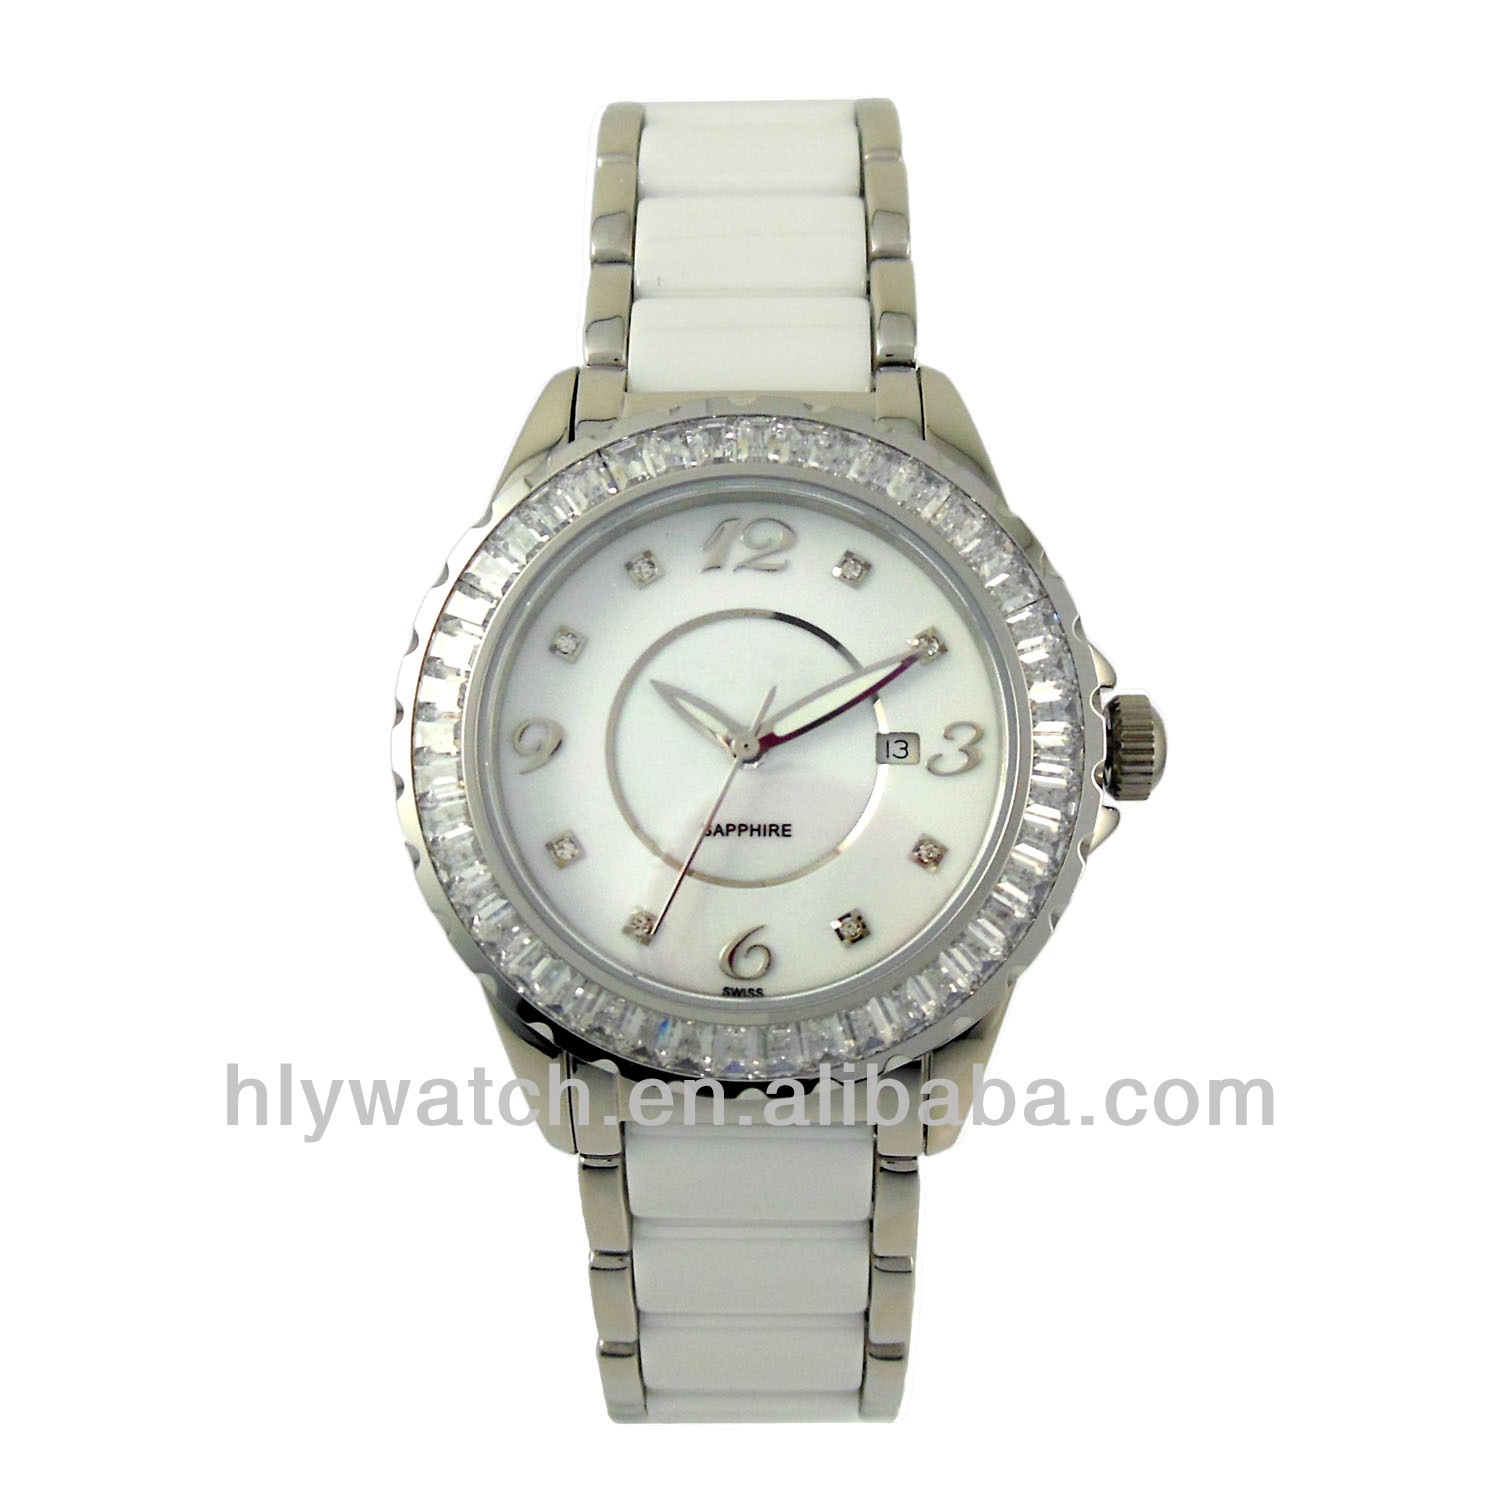 High quality royal swiss watch movement,noble white women ceramic beads band watch hot wholesale in China ceramic watch factory